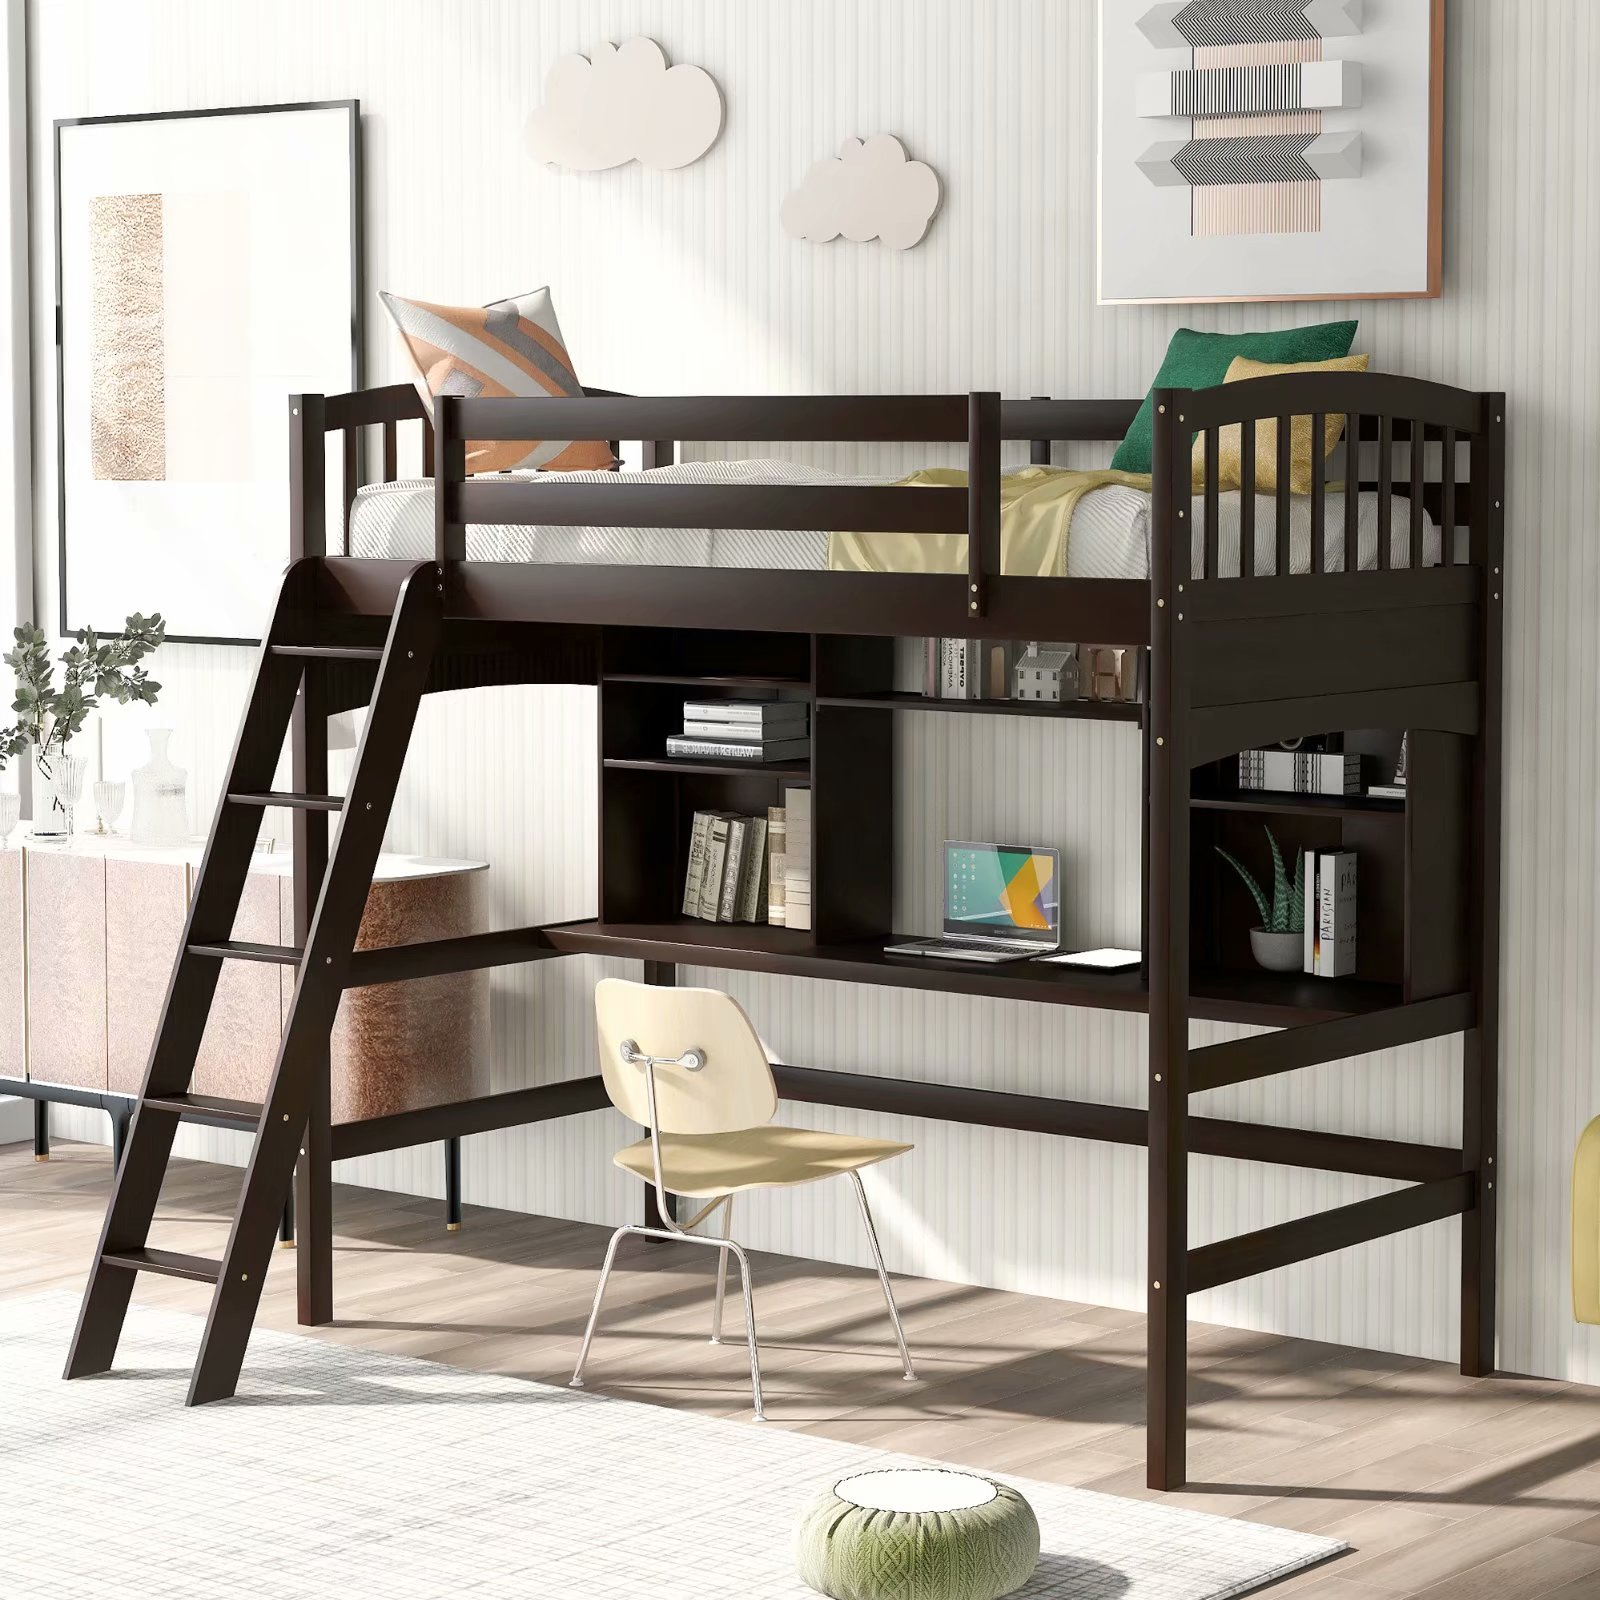 Everking Twin Size Loft Bed With Desk Solid Wood Loft Bunk Bed With Storage Shelves Angled And Built In Ladder For Kids And Teens No Box Spring Needed Walmart Com Walmart Com